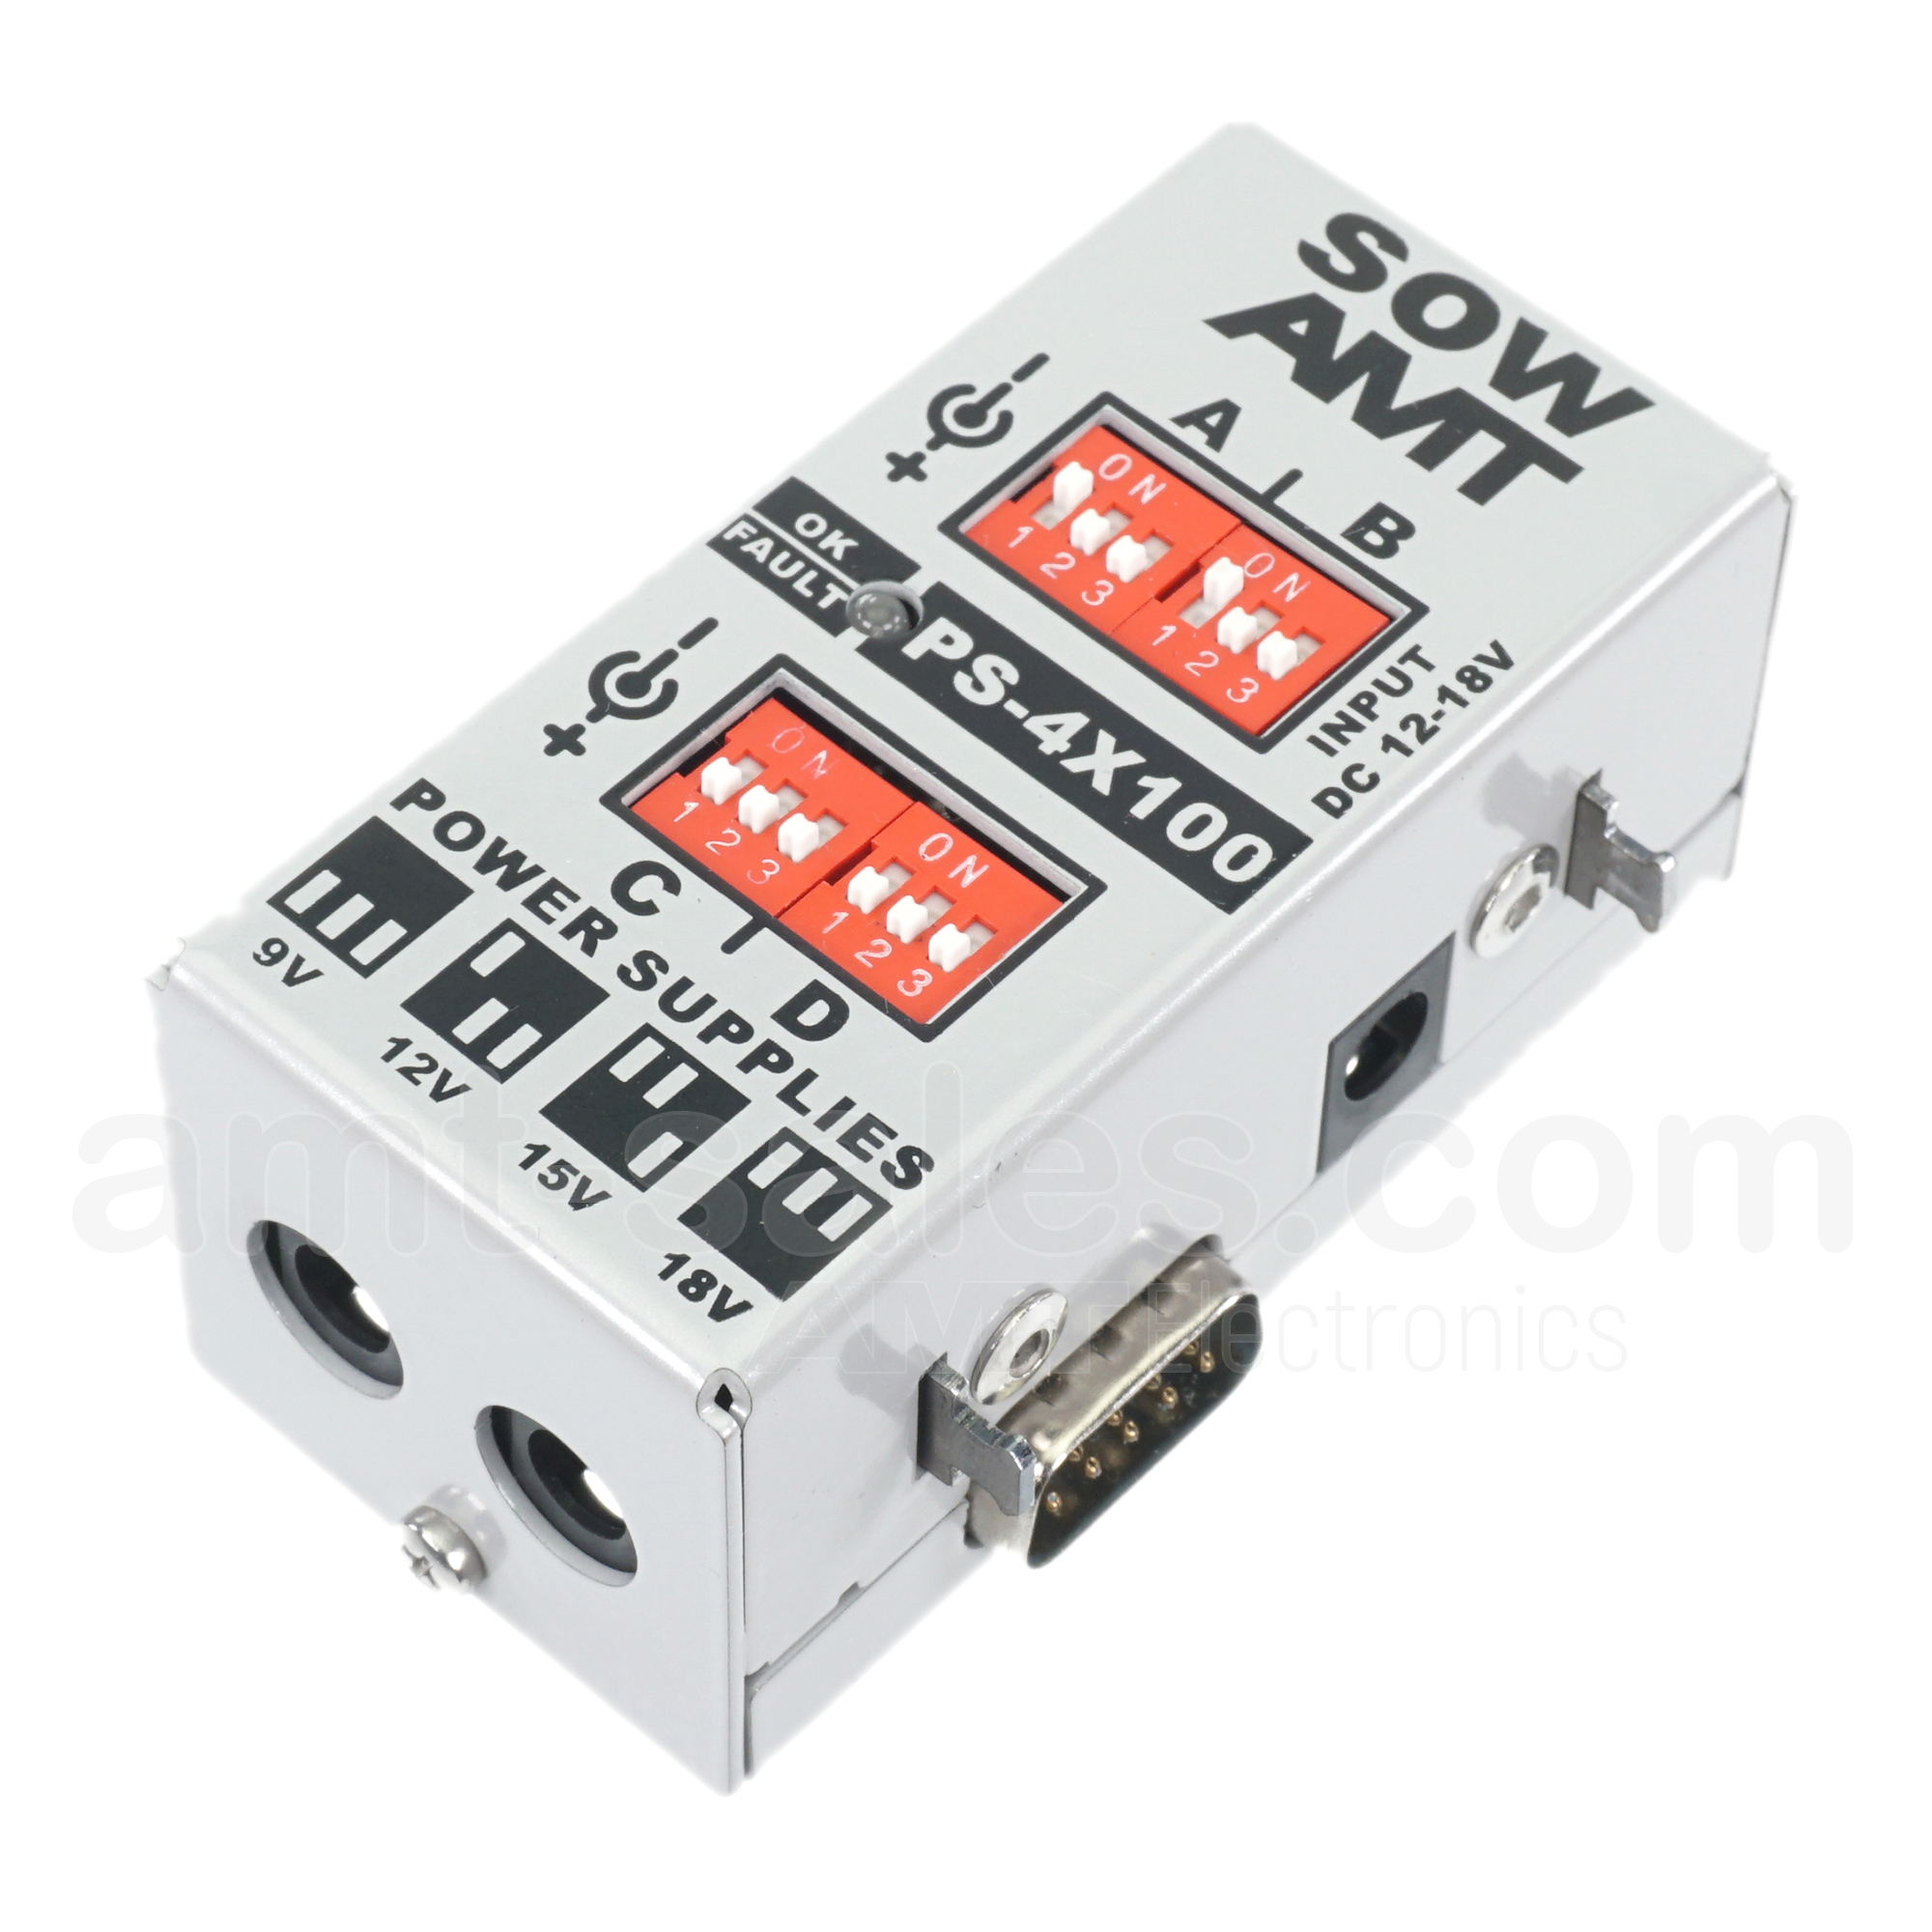 AMT SOW PS-4x100mA - power supply module